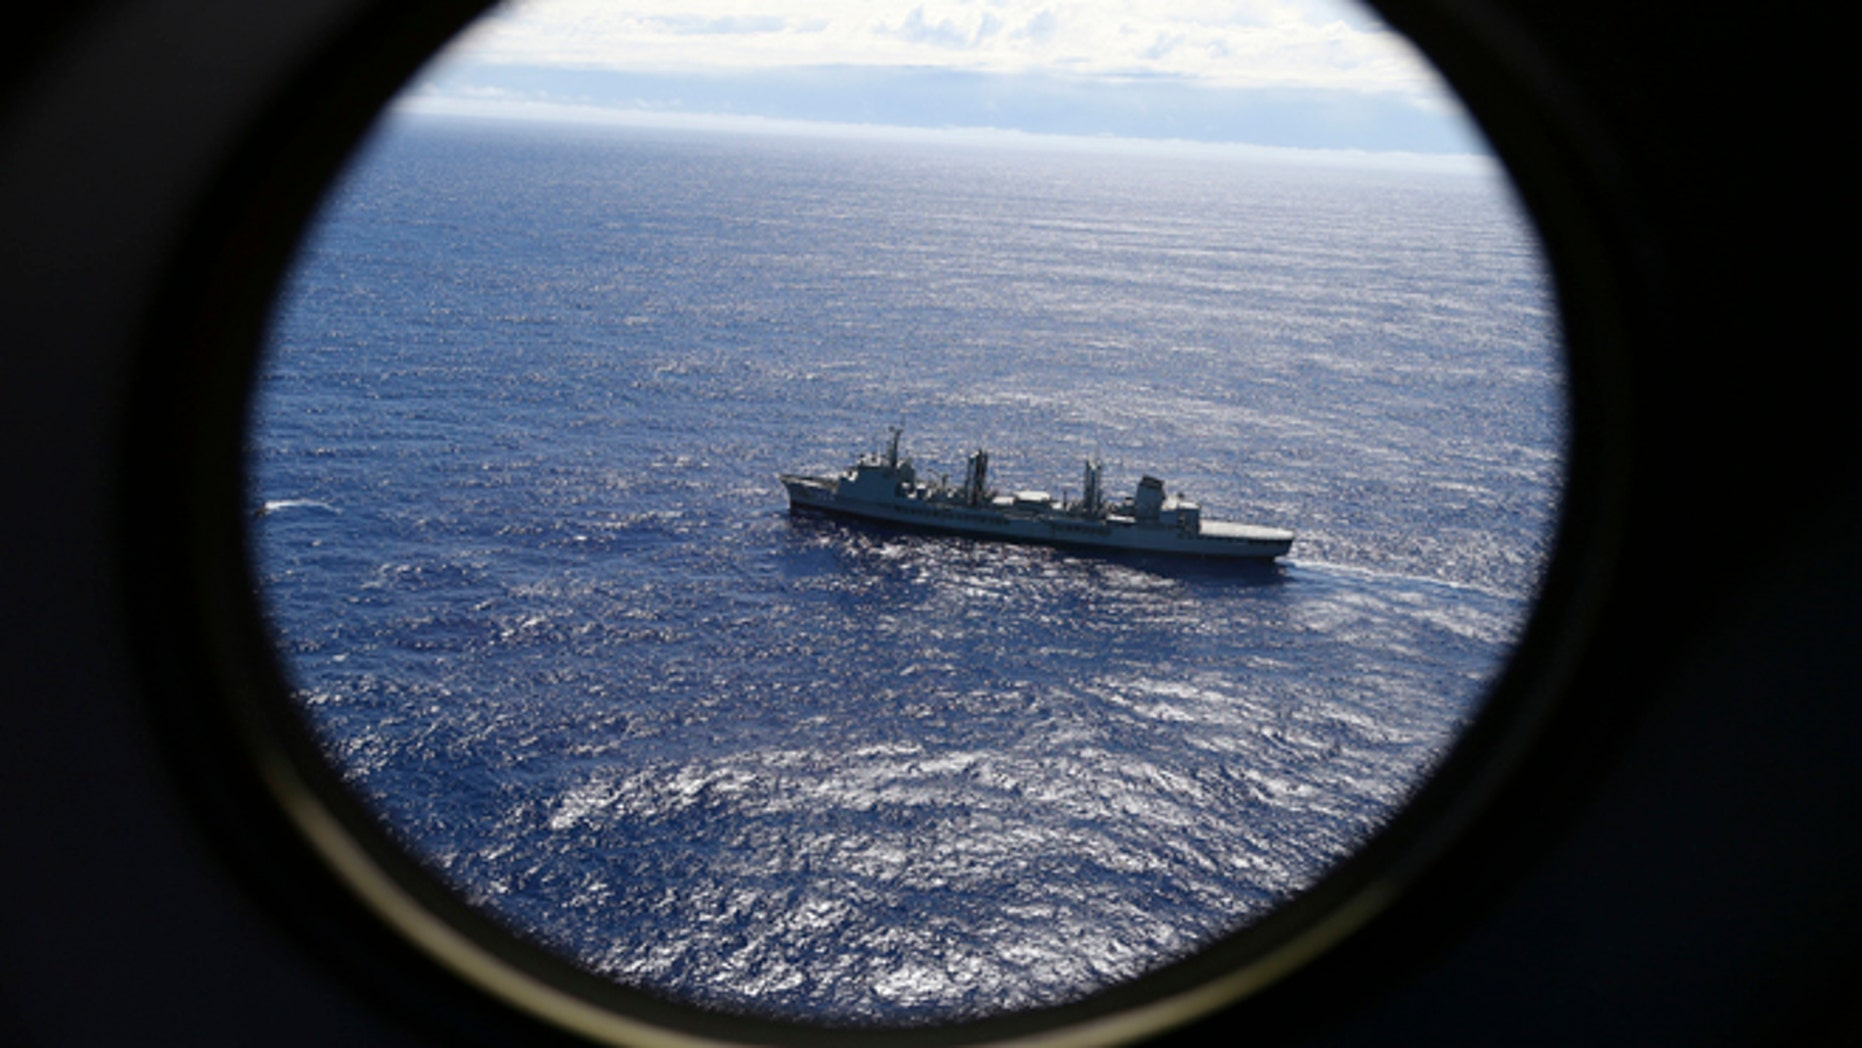 FILE - In this March 31, 2014 file photo, HMAS Success scans the southern Indian Ocean, near the coast of Western Australia, as a Royal New Zealand Air Force P3 Orion flies over, while searching for missing Malaysia Airlines Flight MH370.